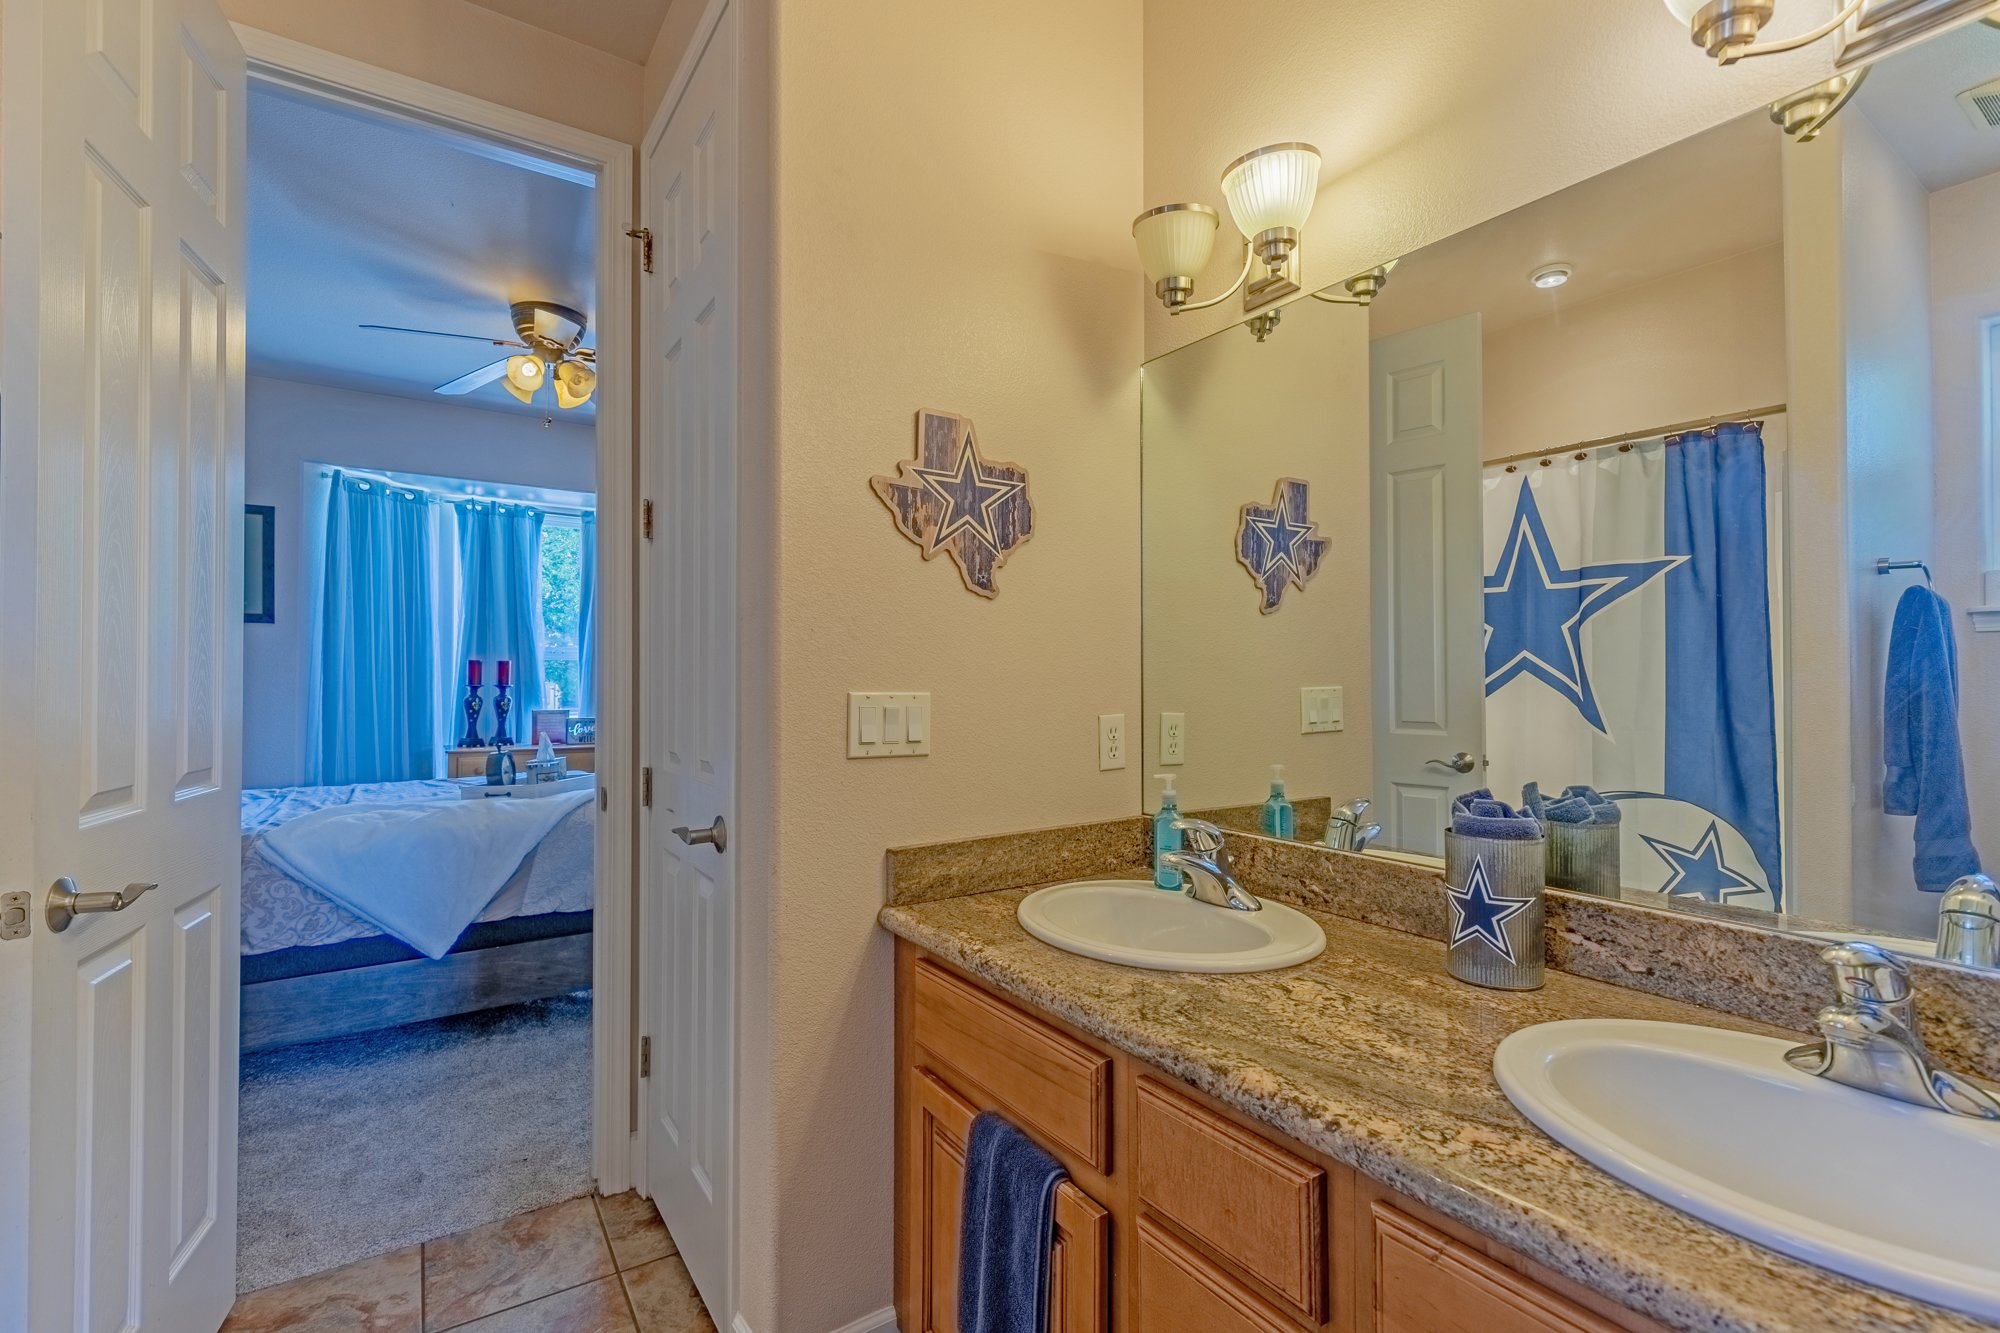 Full Bathroom with Dual Sinks - 2924 Lost Creek Rd S. Montrose, CO 81401 - Atha Team Real Estate Agents